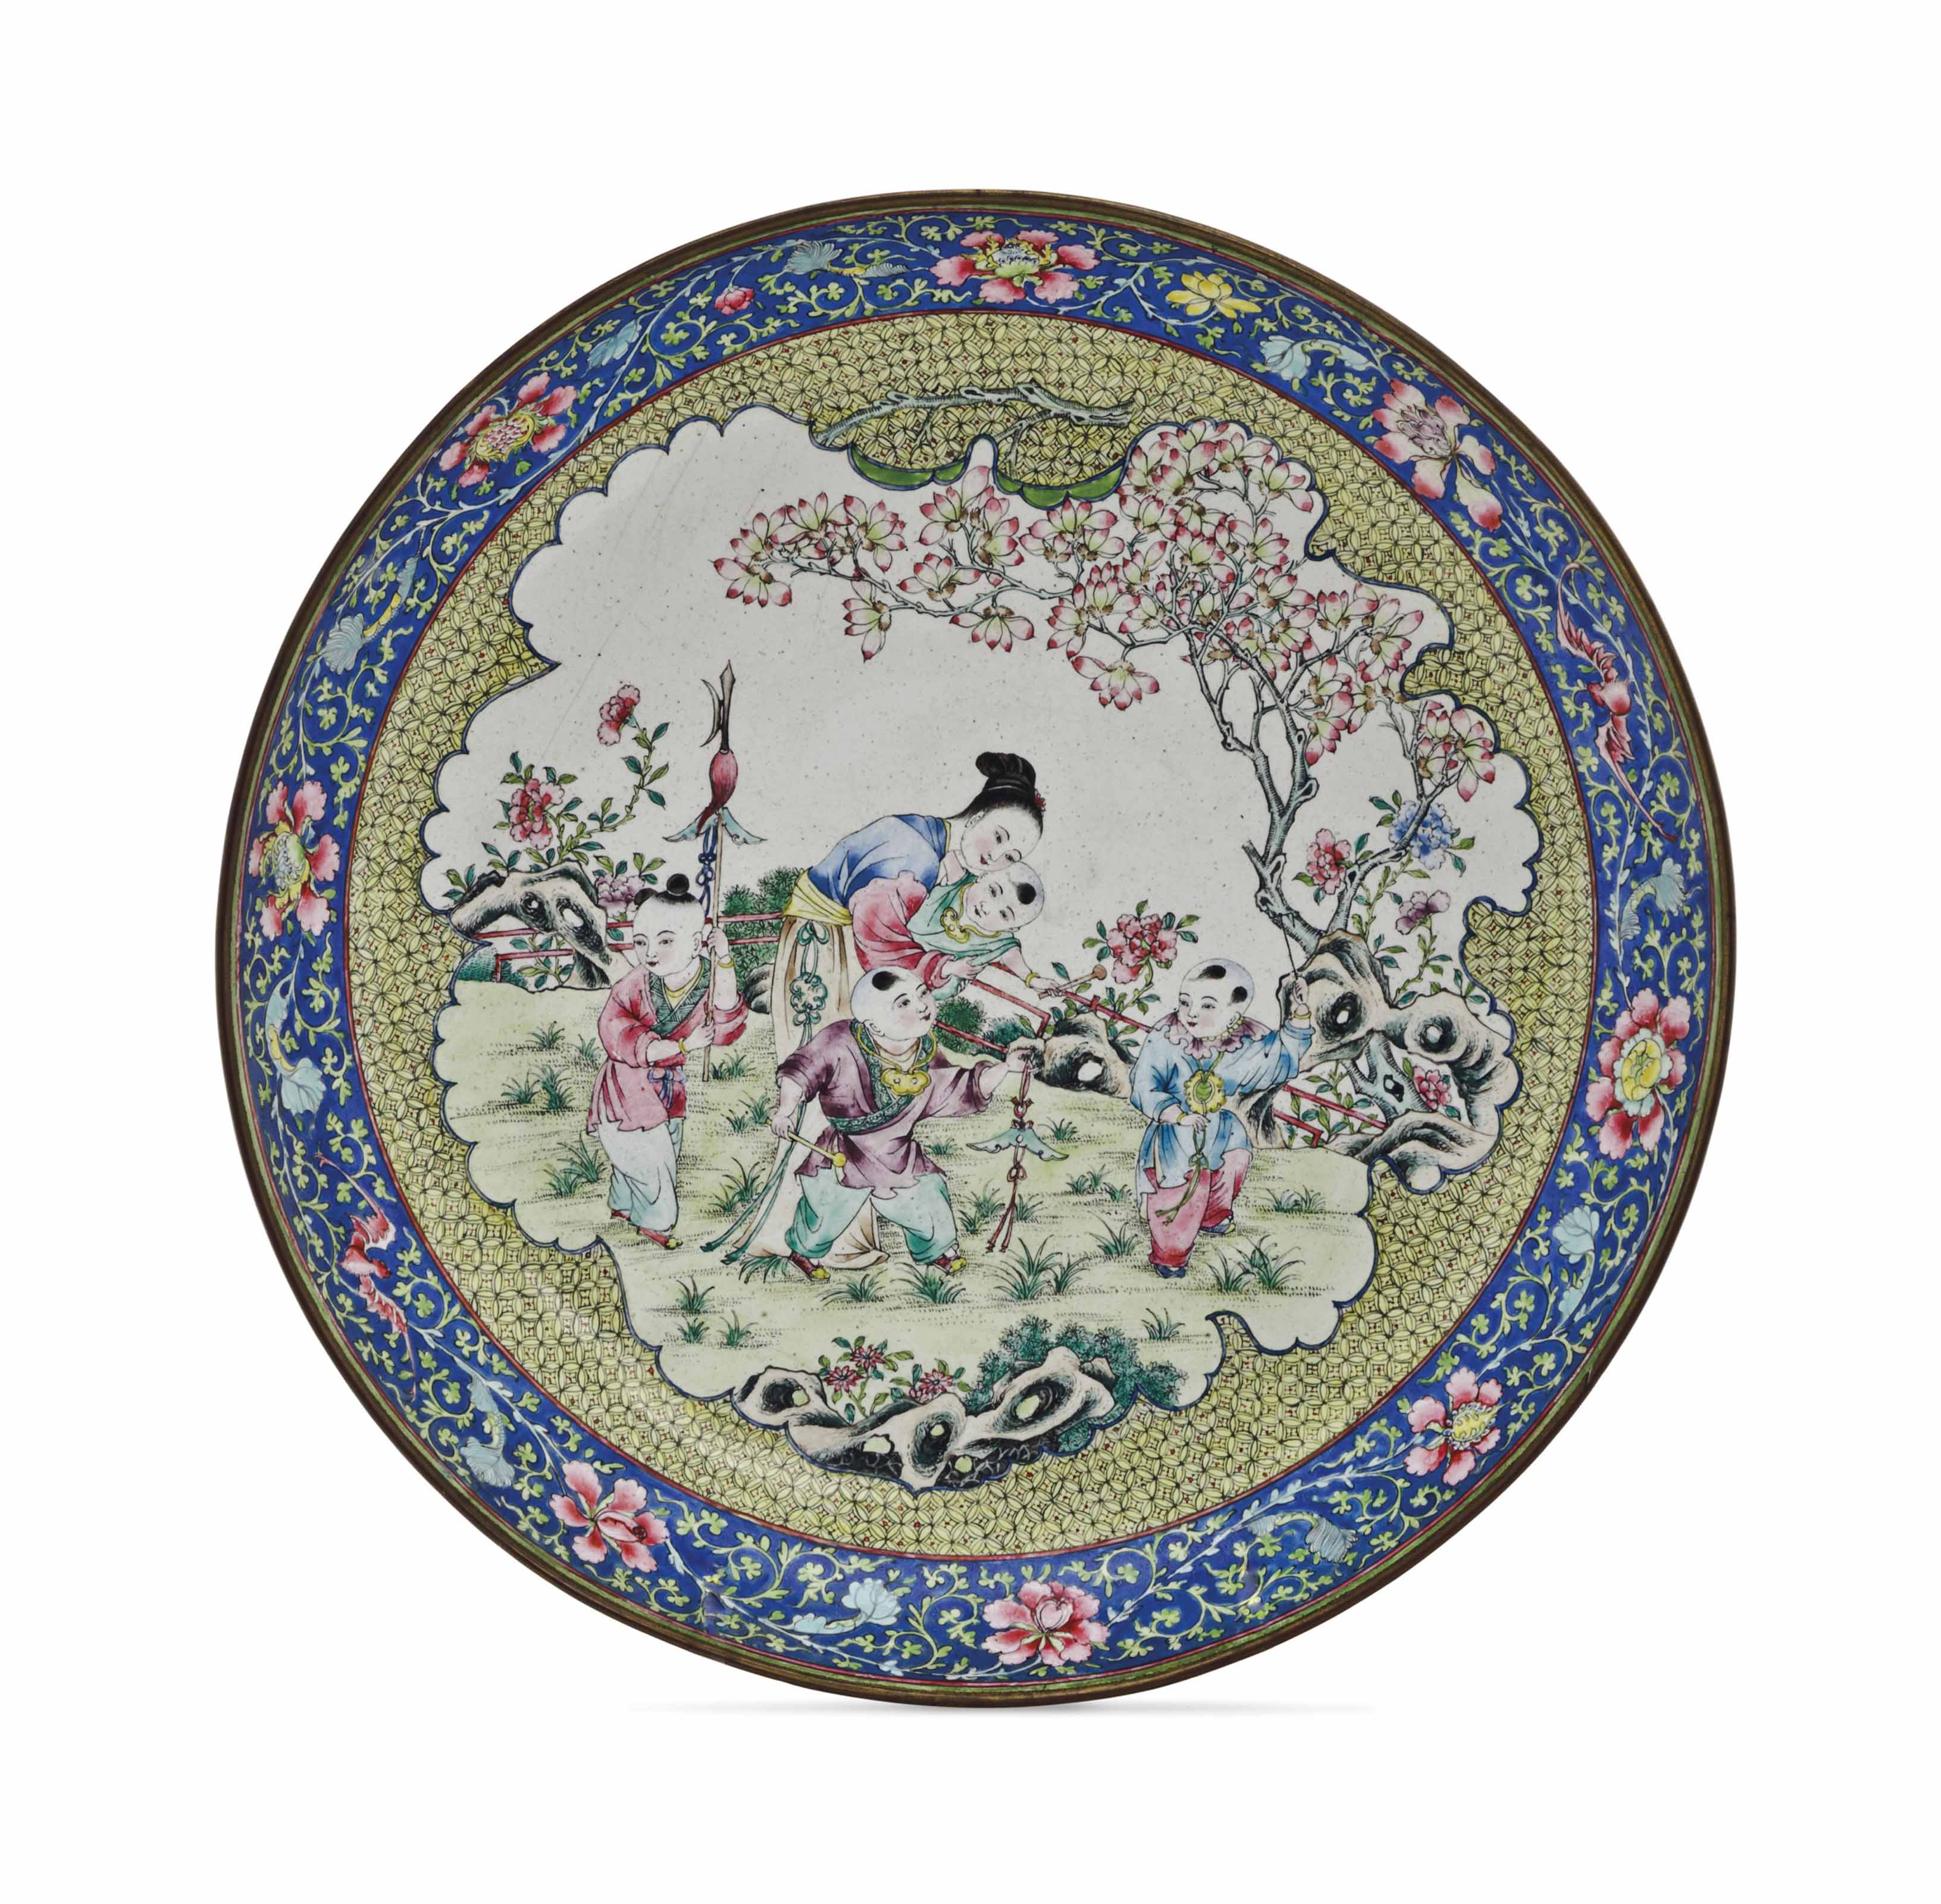 A CHINESE FAMILLE ROSE ENAMEL